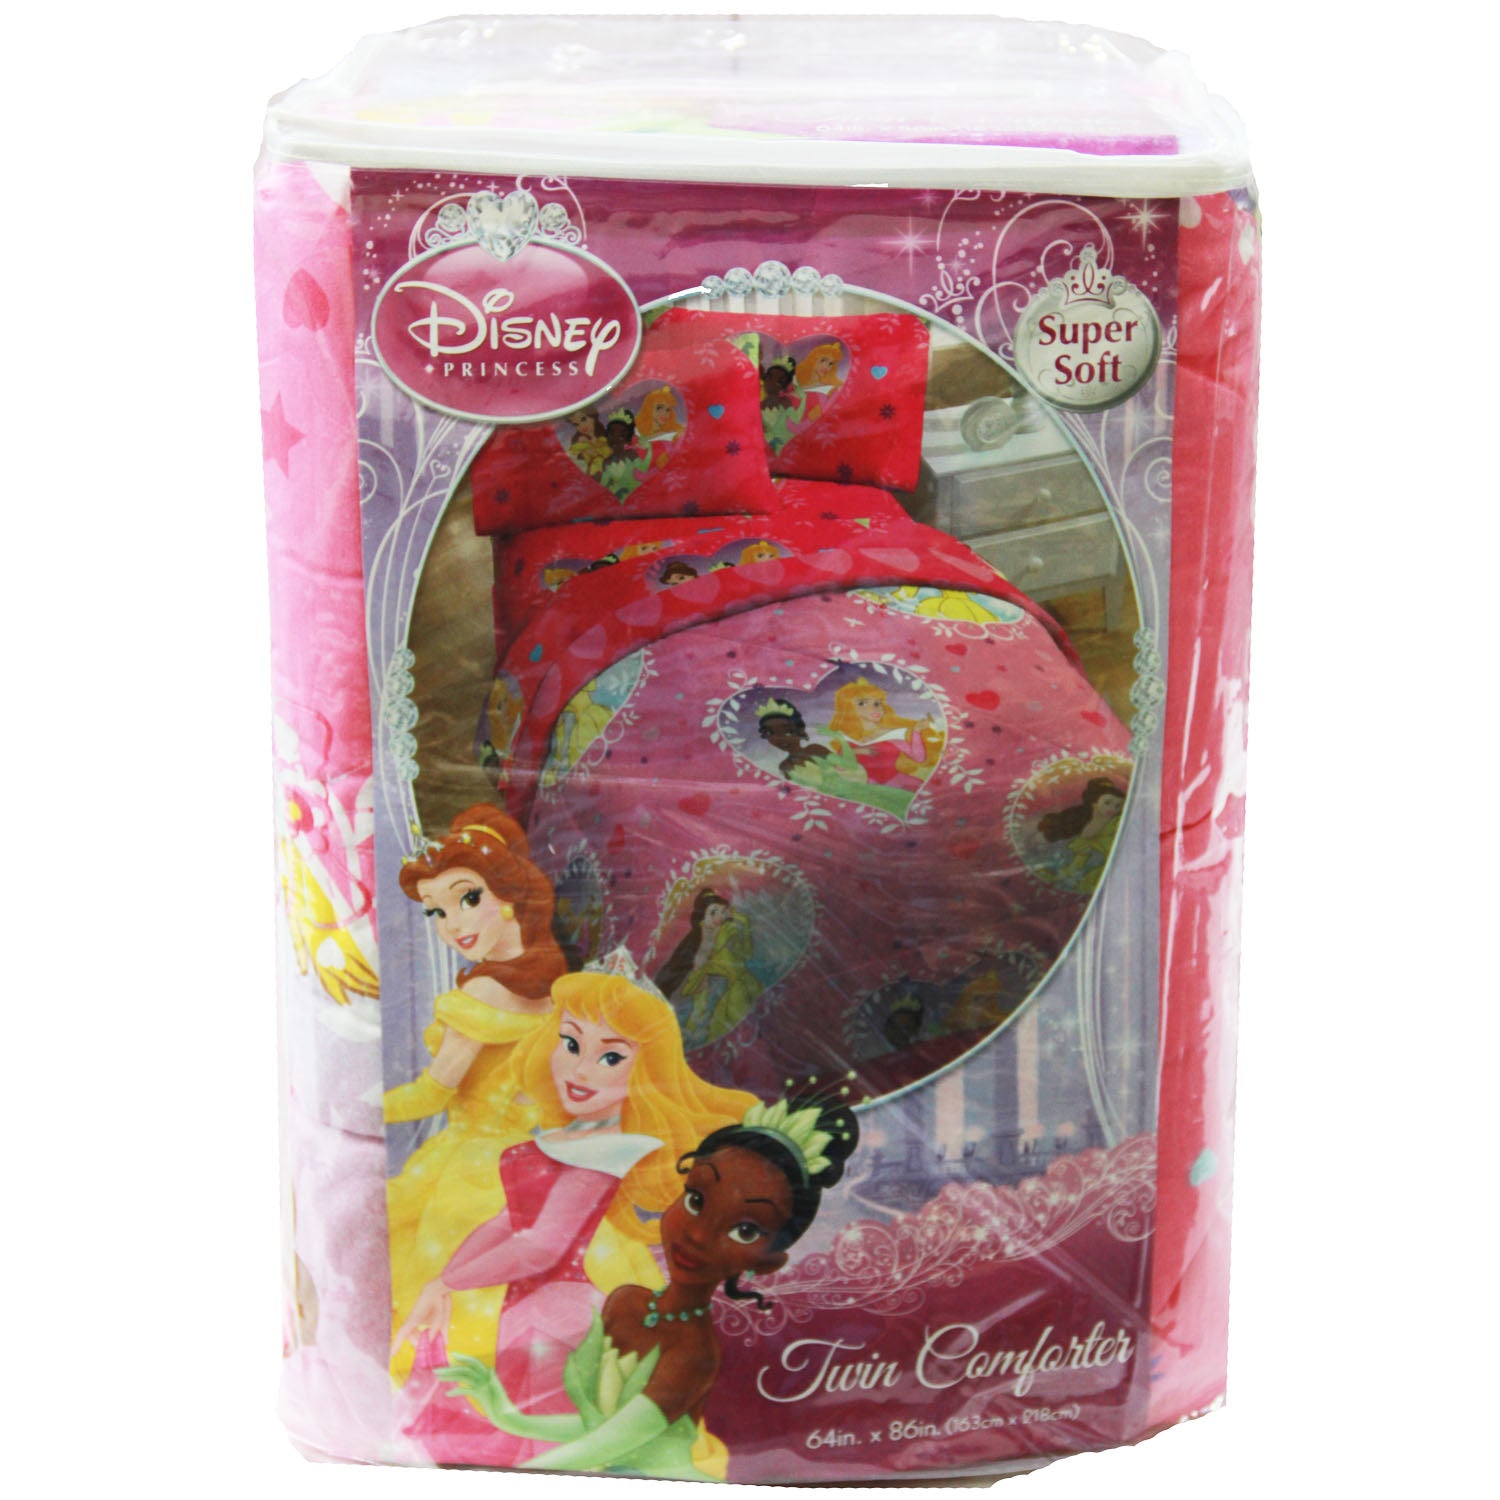 Disney Princess Bedding - Twin Comforter